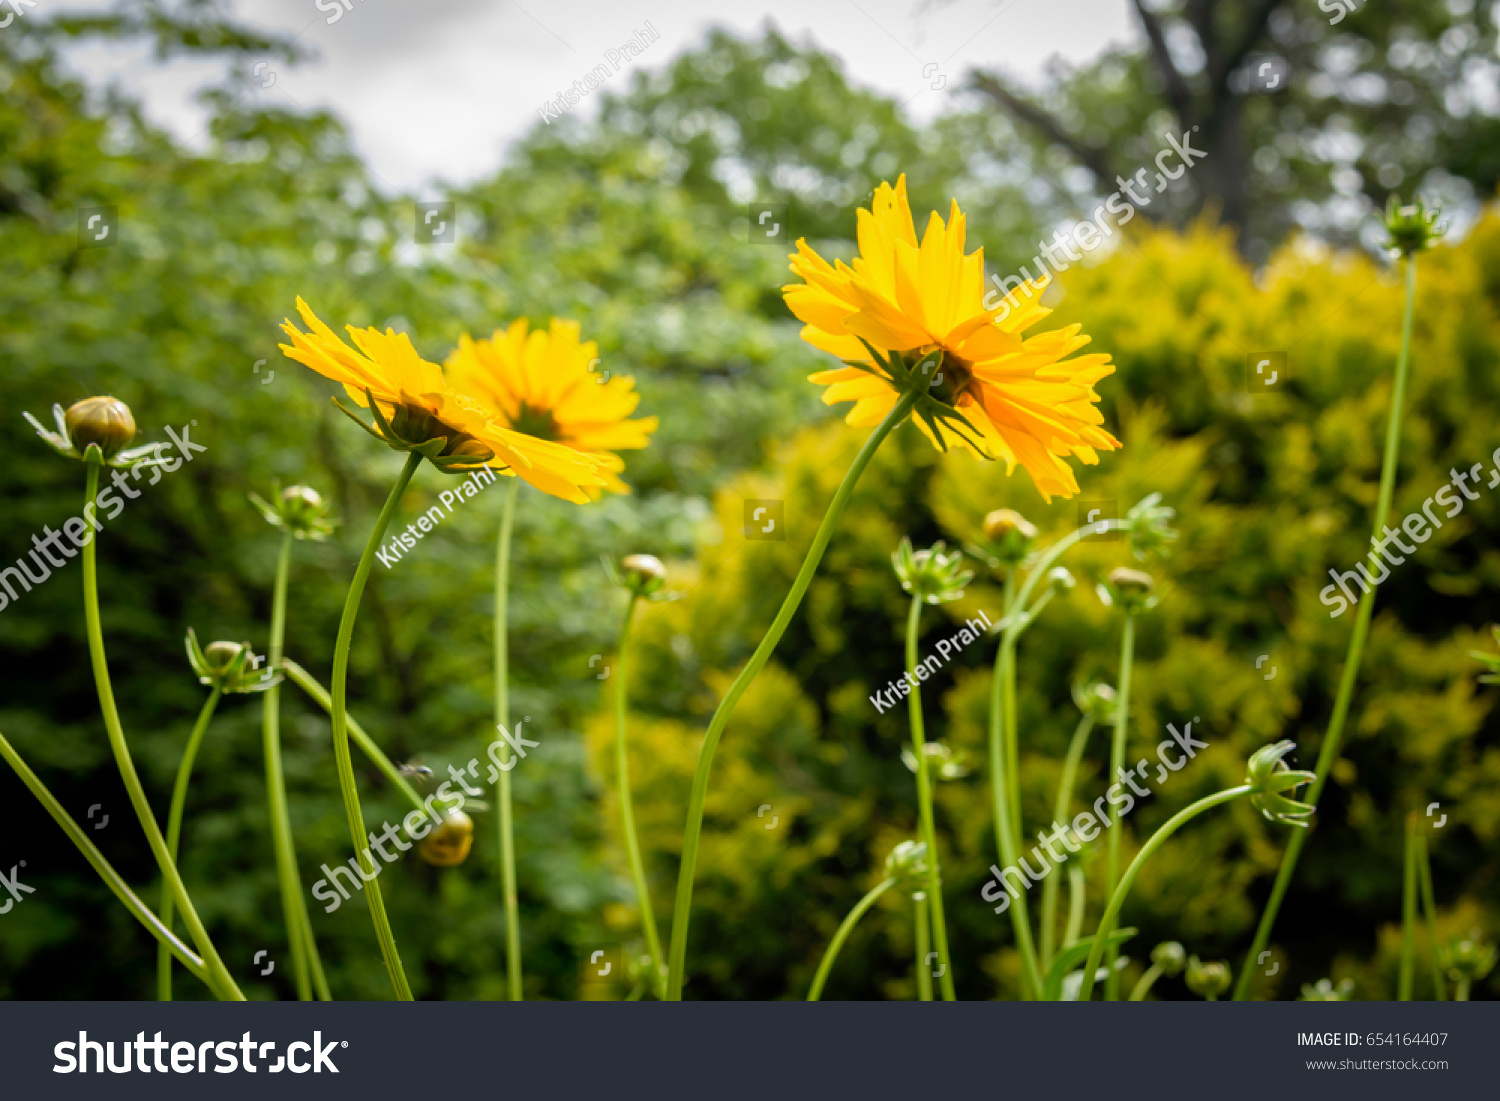 A Wild Yellow Flower Golden Ragwort With Green Leaves On A Cloudy